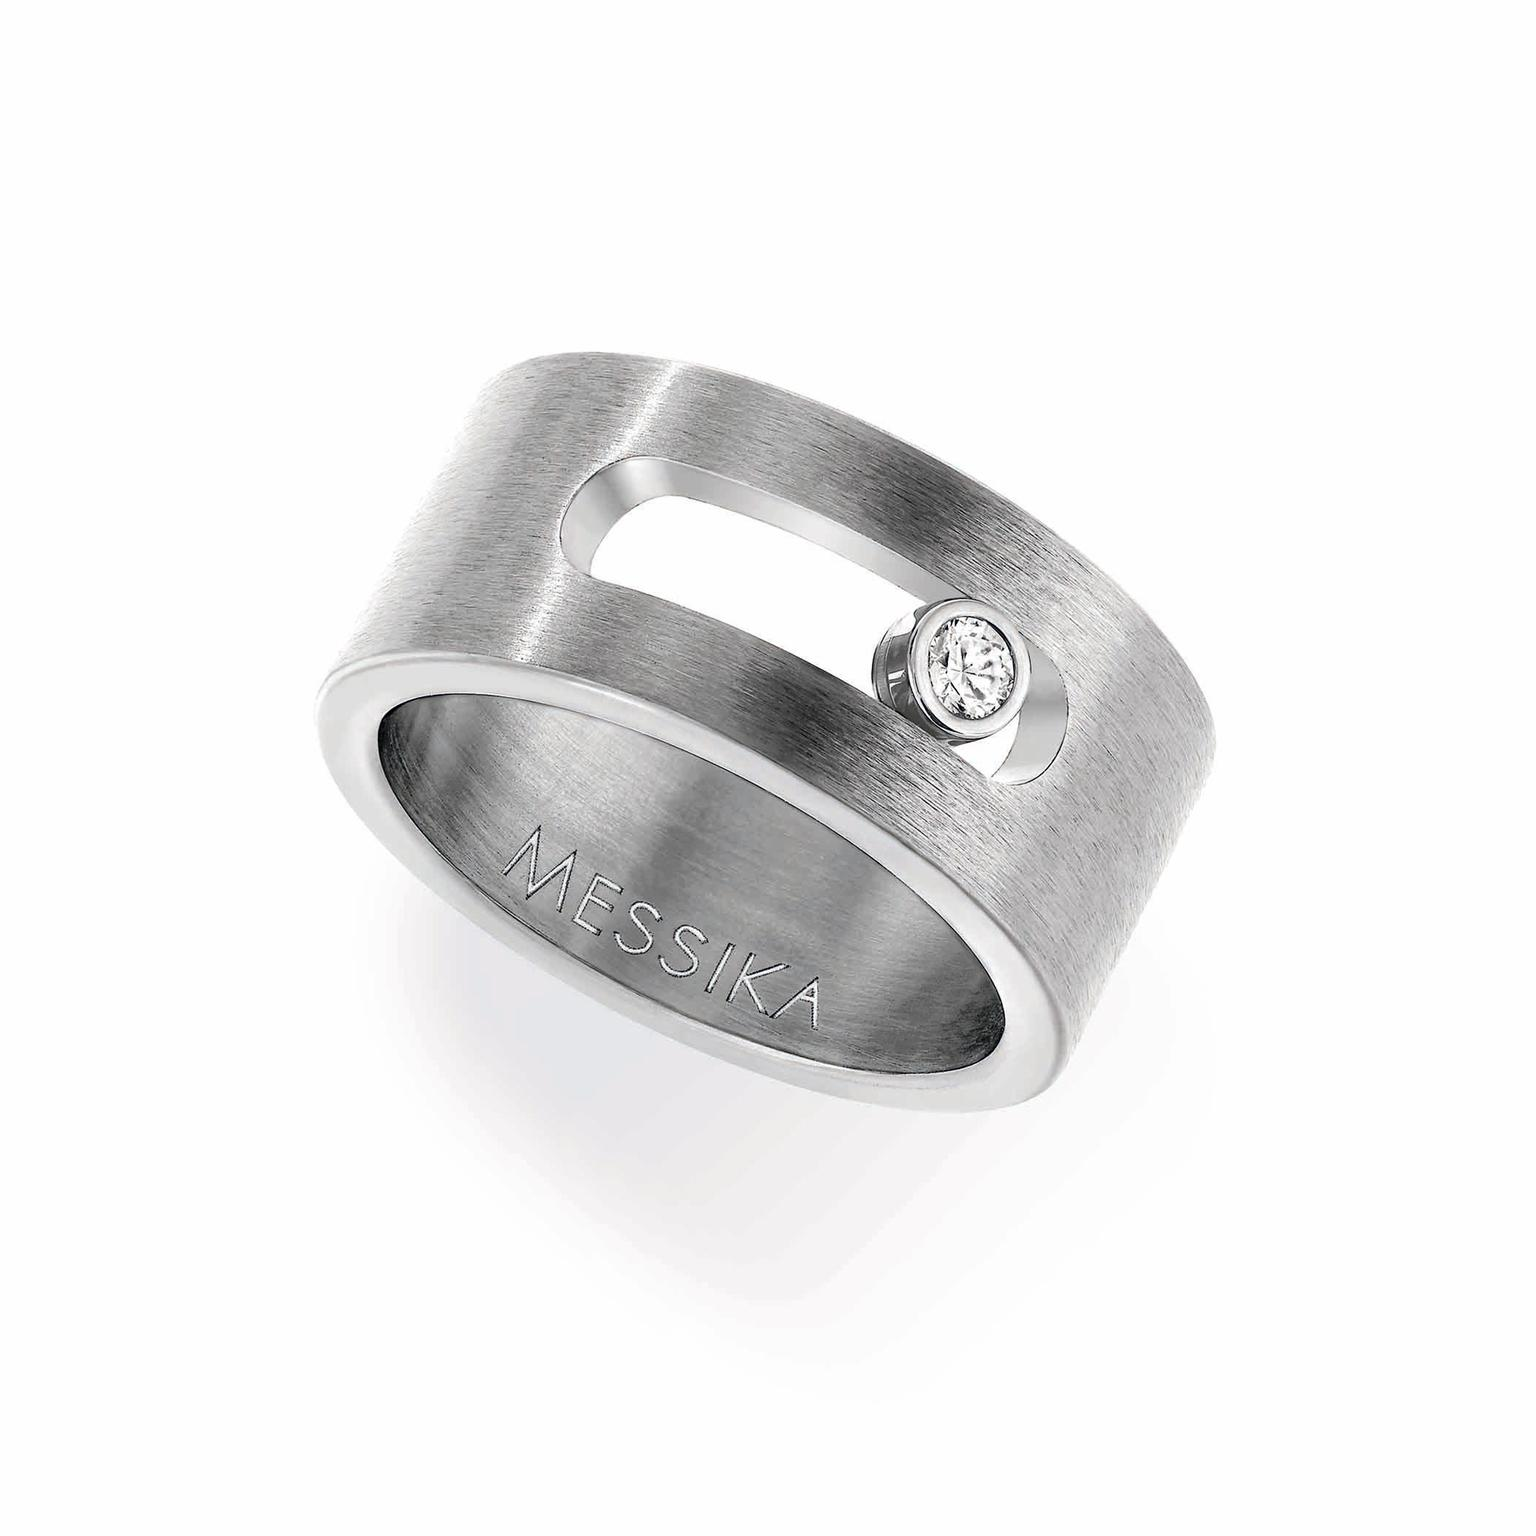 Messika Move ring in titanium with white diamond